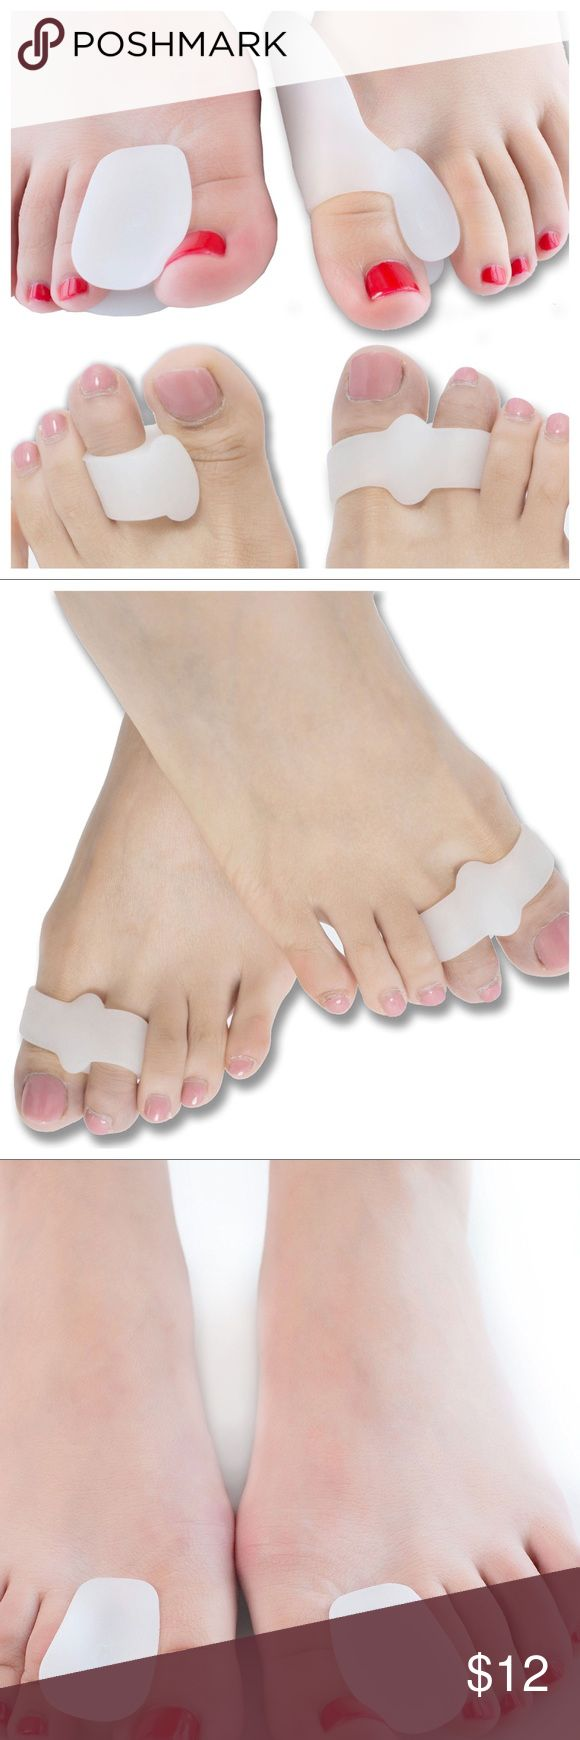 DR JK UNISEX NEW IN BOX SET OF 8 BUNION RELIEF! Bunion Relief, Toe Separators Kit- 8 Piece. Bunion Corrector, Hallux Valgus, Toe Straighteners. 4 Pairs of BunionPals for Men & Women, designed to cover all your activities in shoes & barefoot. Immediate Pain Relief Results & Prevent Surgical Treatment. Toe Separators & Bunion Pads increase the spacing between the big toe & 2nd toe for proper joint alignment, less irritation/friction. Made of stretchable soft medical grade gel. Easily cleaned…